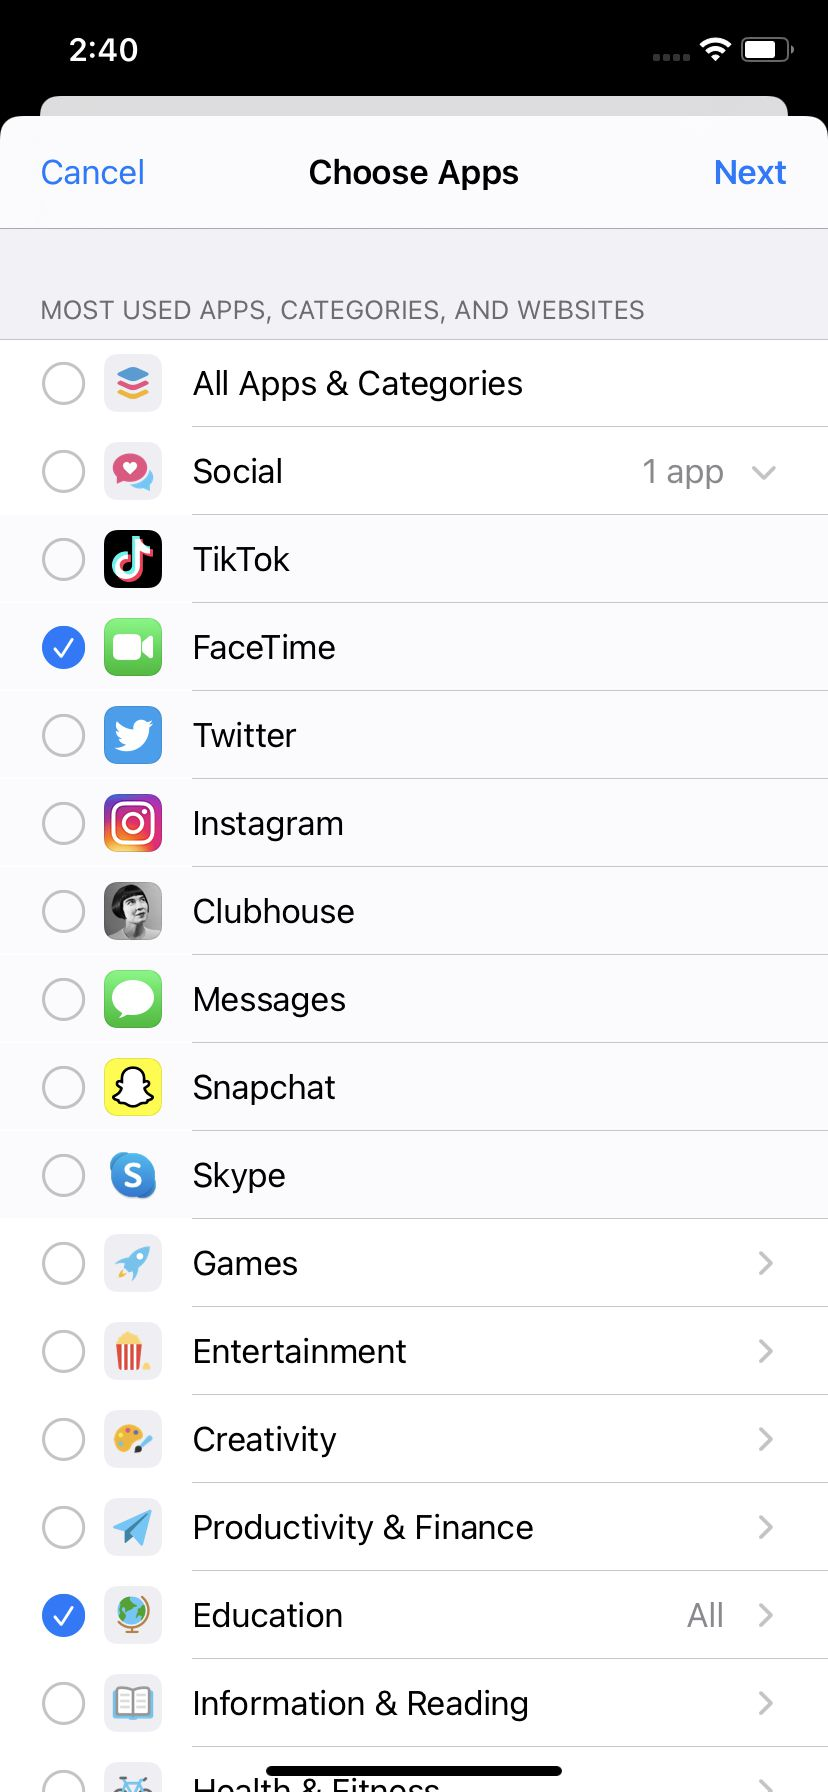 You can limit specific apps or a category of apps